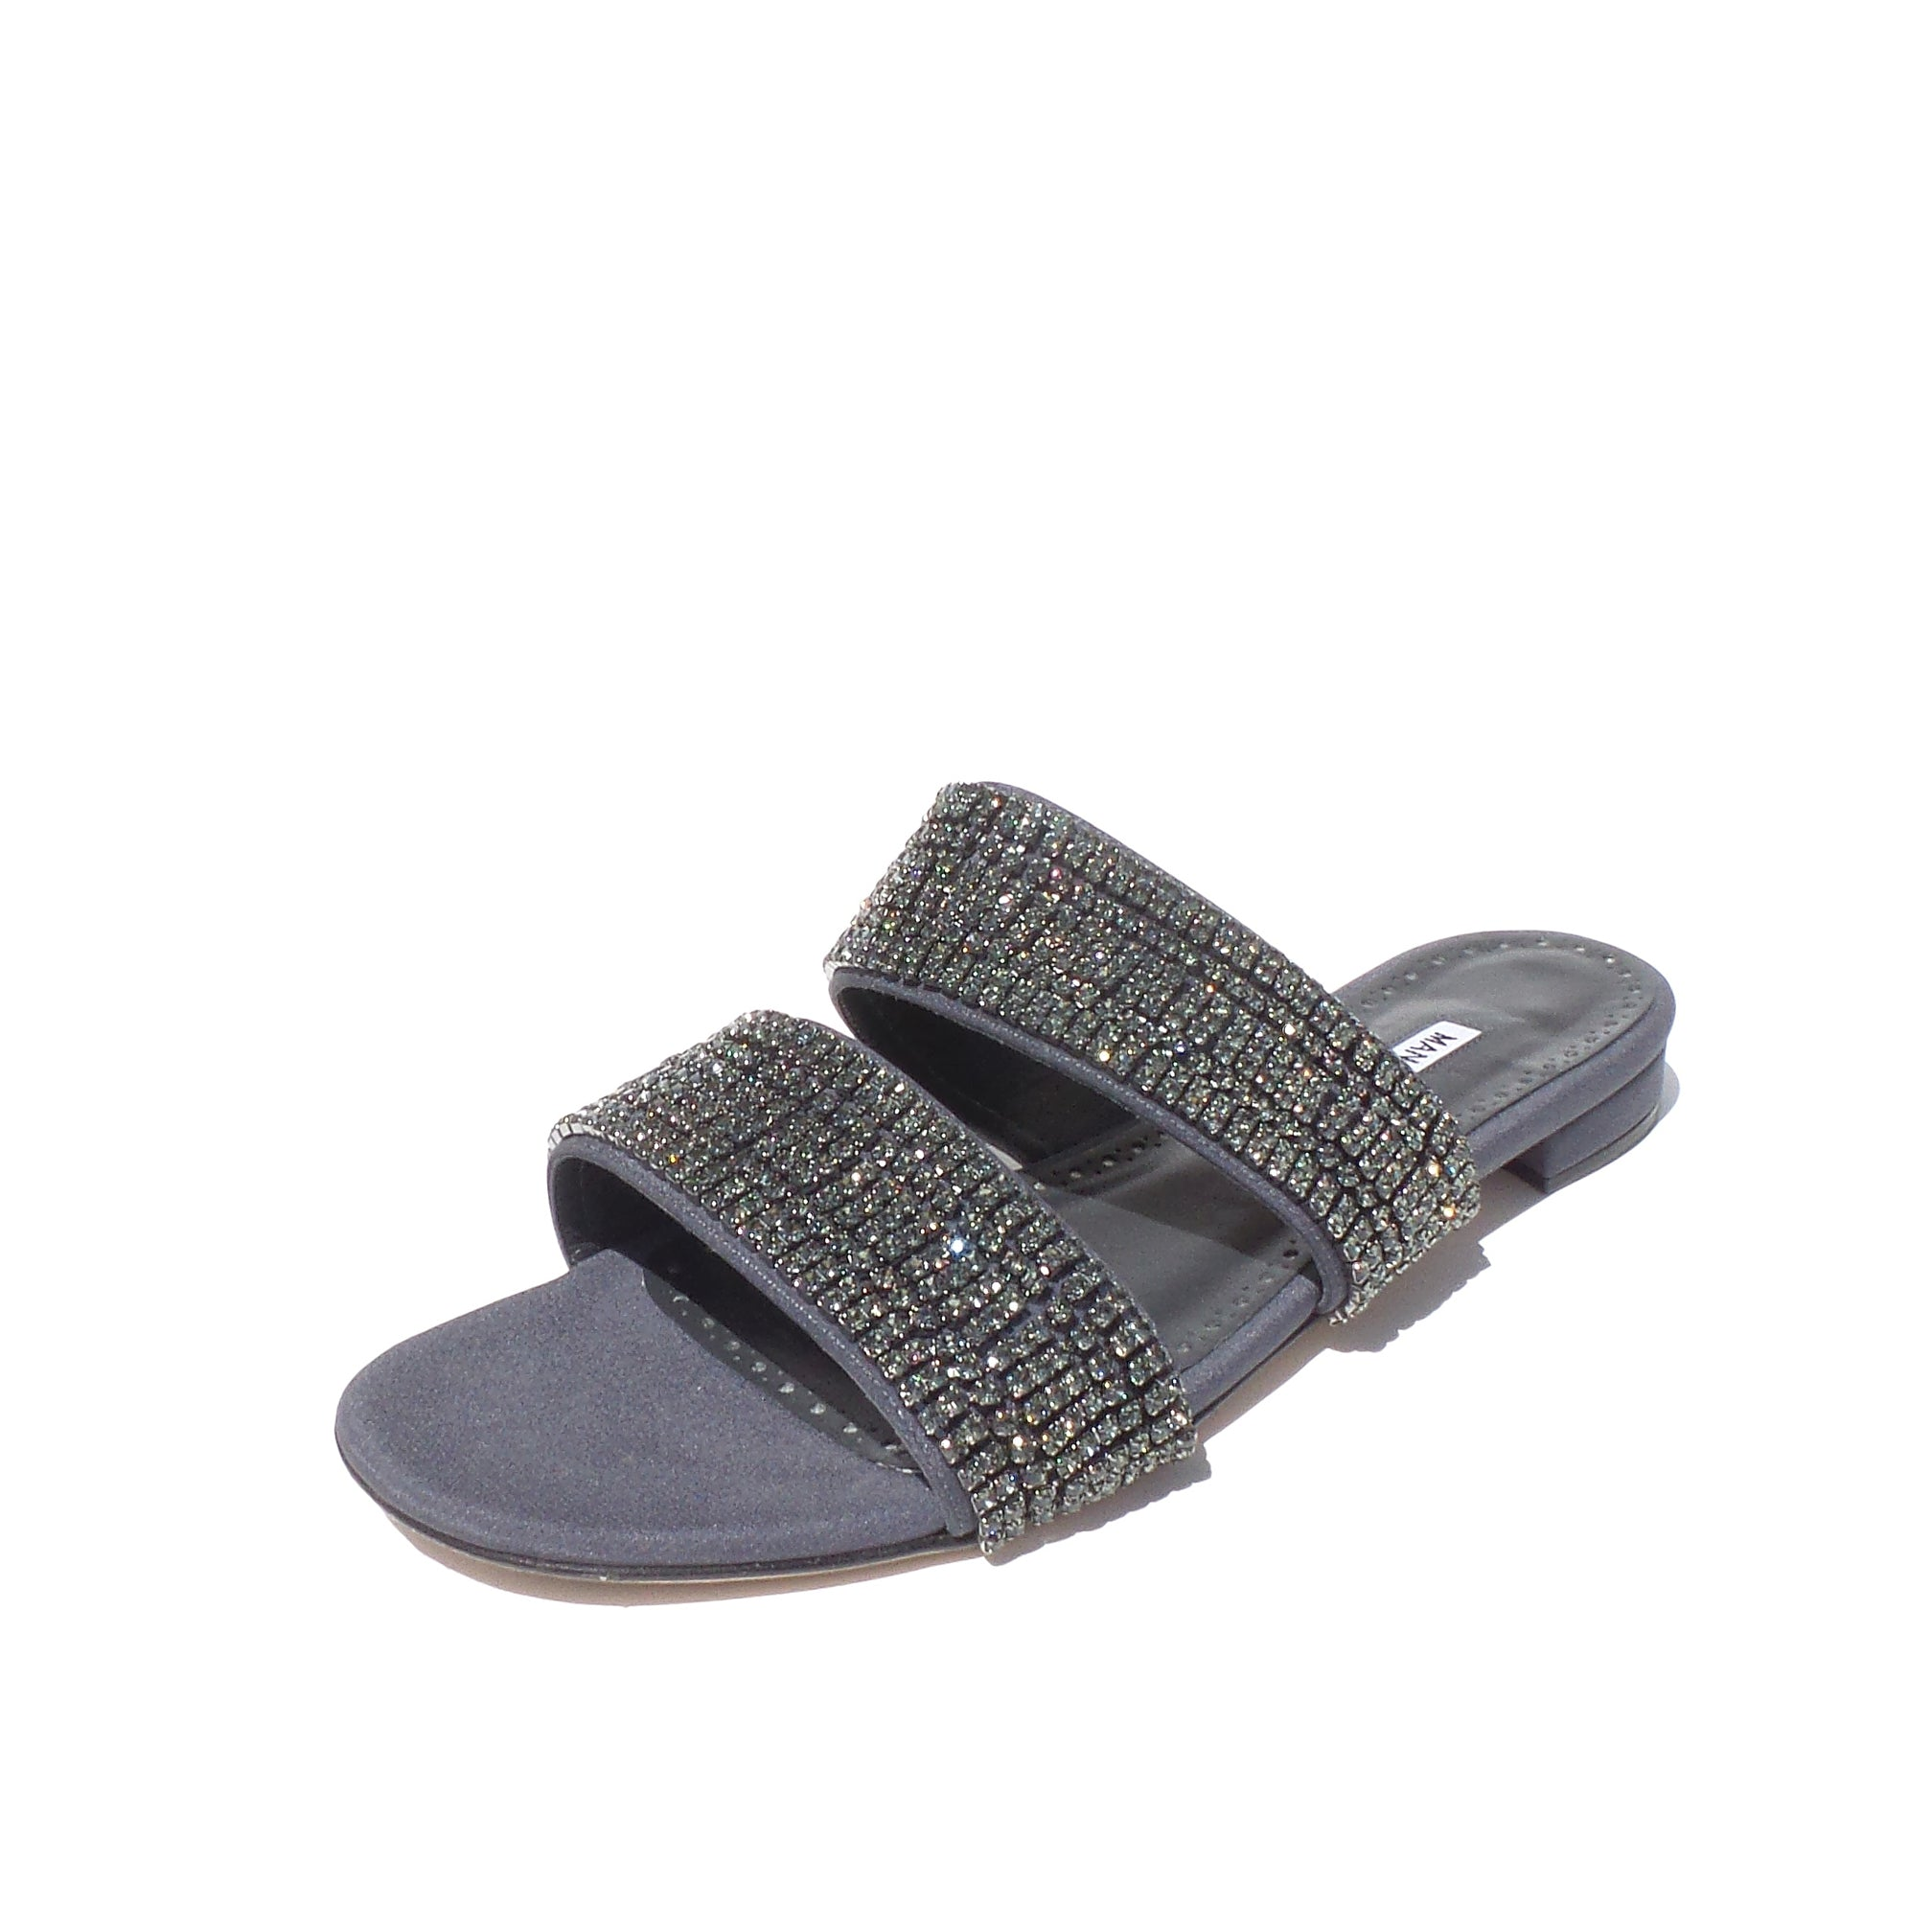 $1195 MANOLO BLAHNIK Bulgocri Gray Satin Crystal Embellished Slide Sandals 38 EC